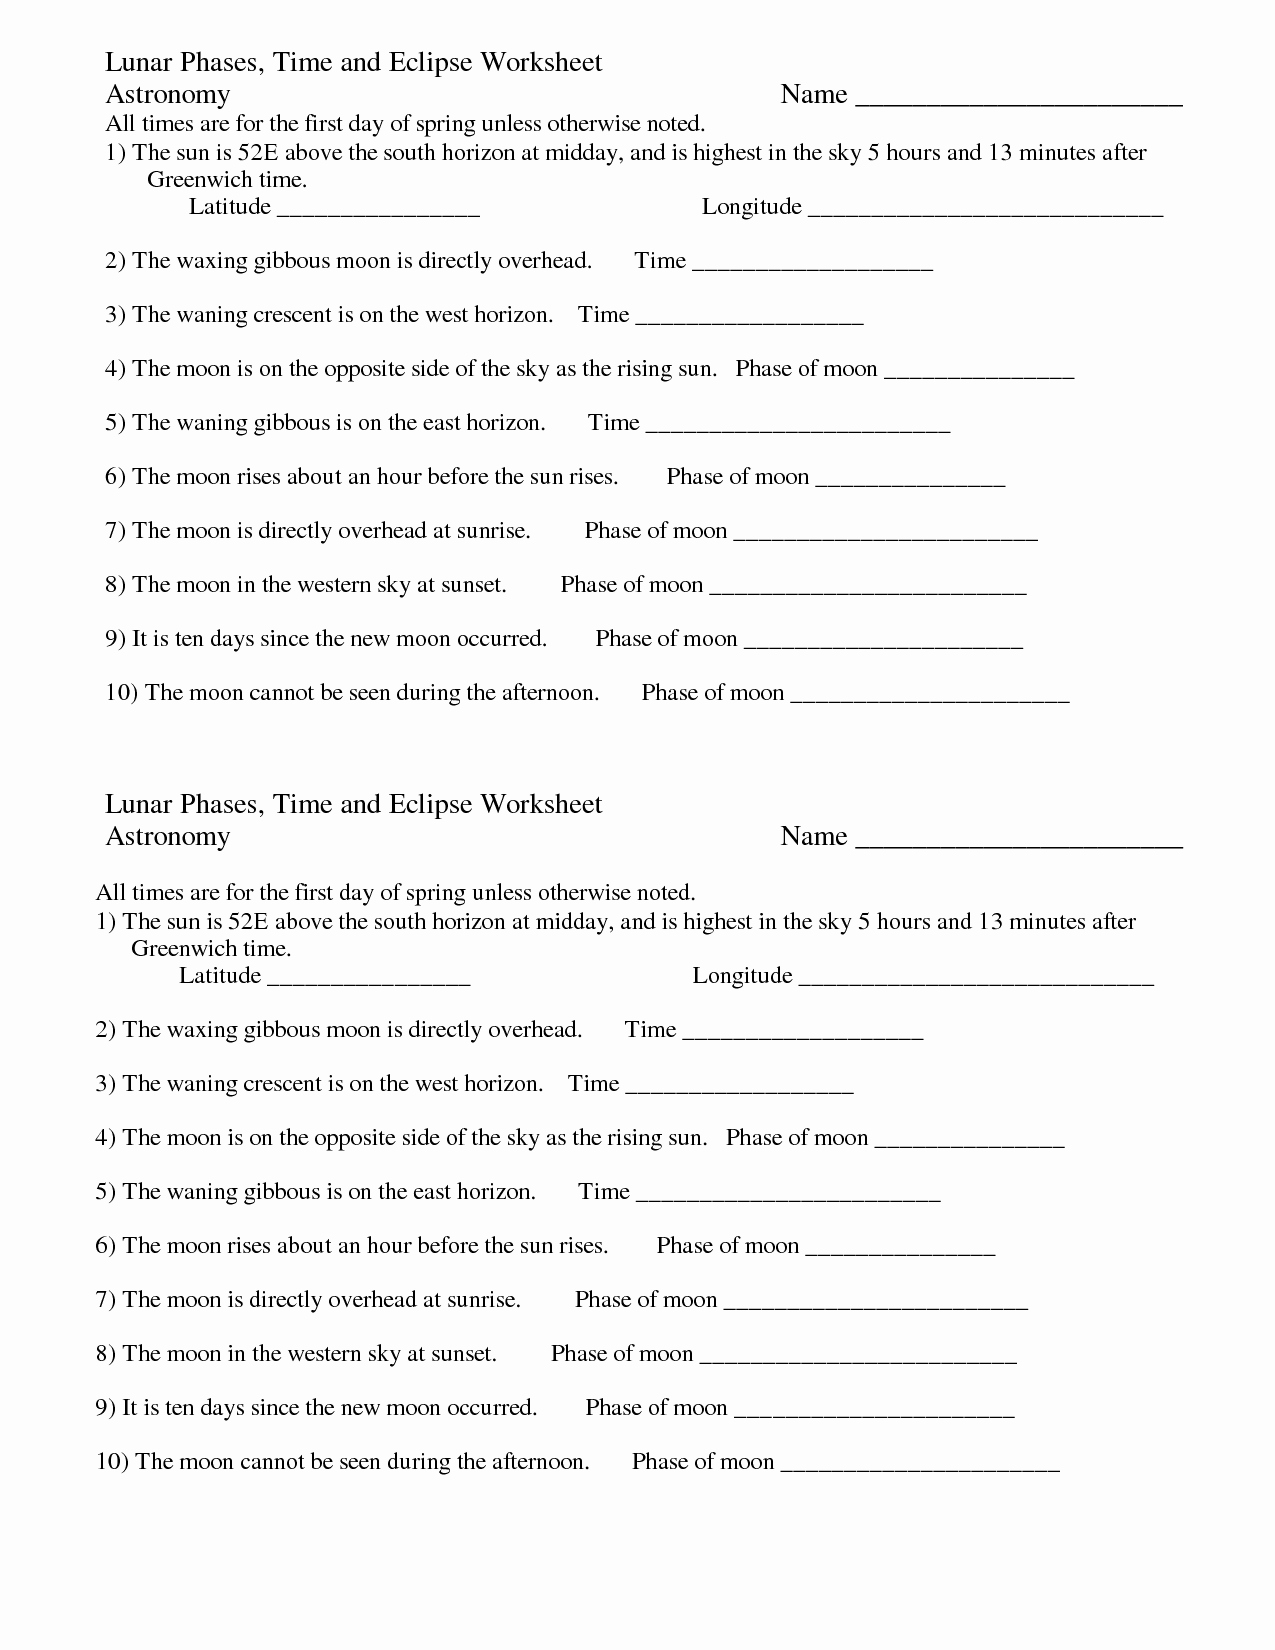 Solar and Lunar Eclipses Worksheet Awesome Moon Eclipses Worksheet for Middle School Moon Best Free